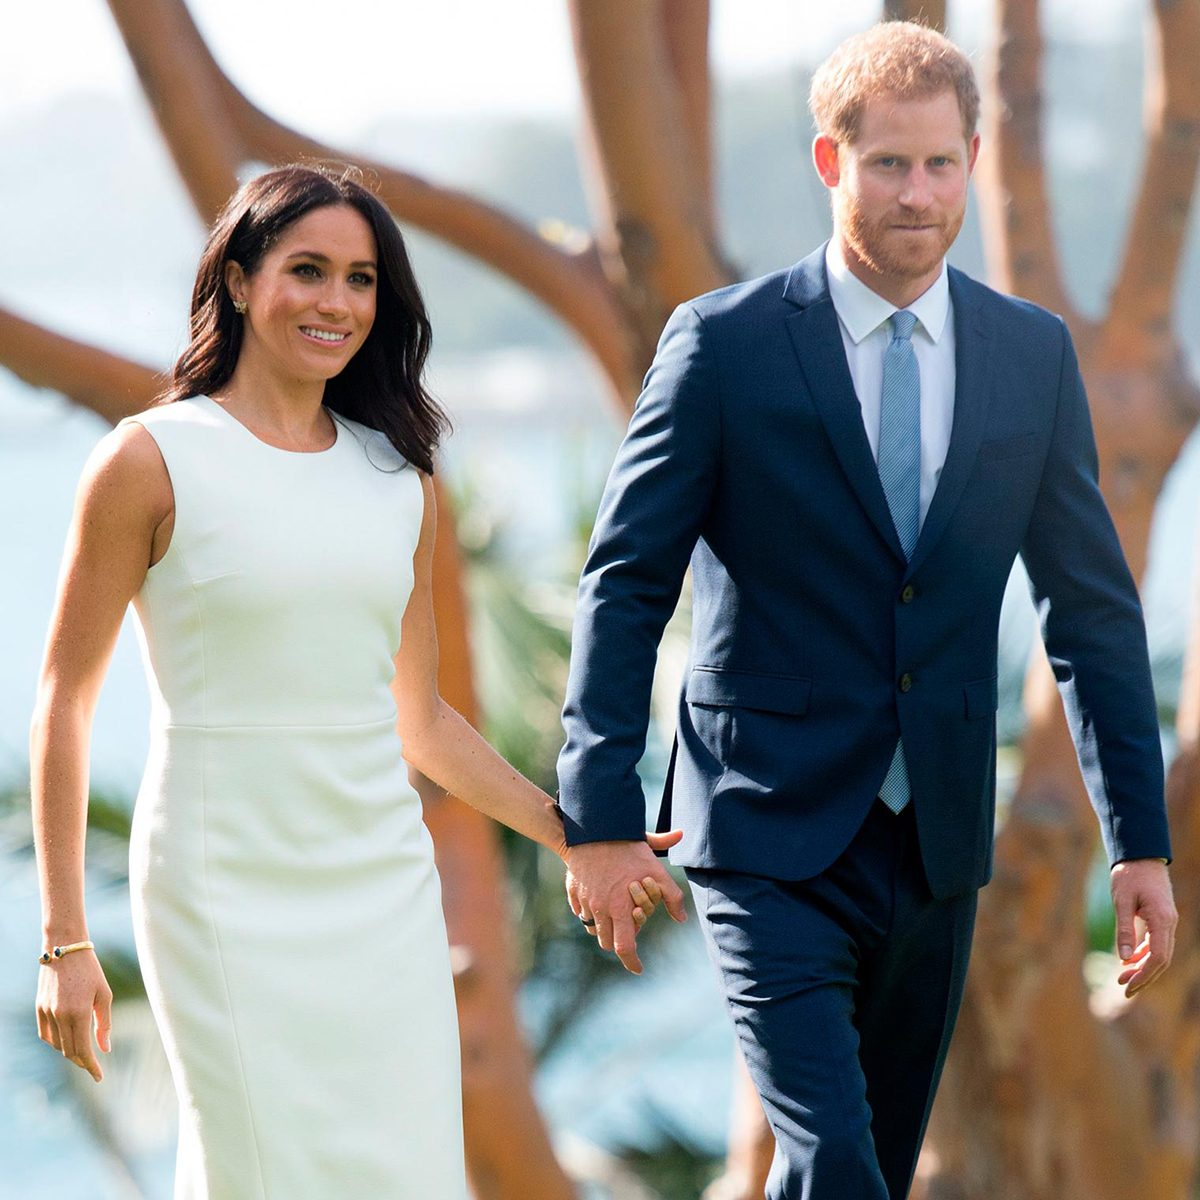 14 Foods Meghan Markle Won't Be Allowed To Eat While